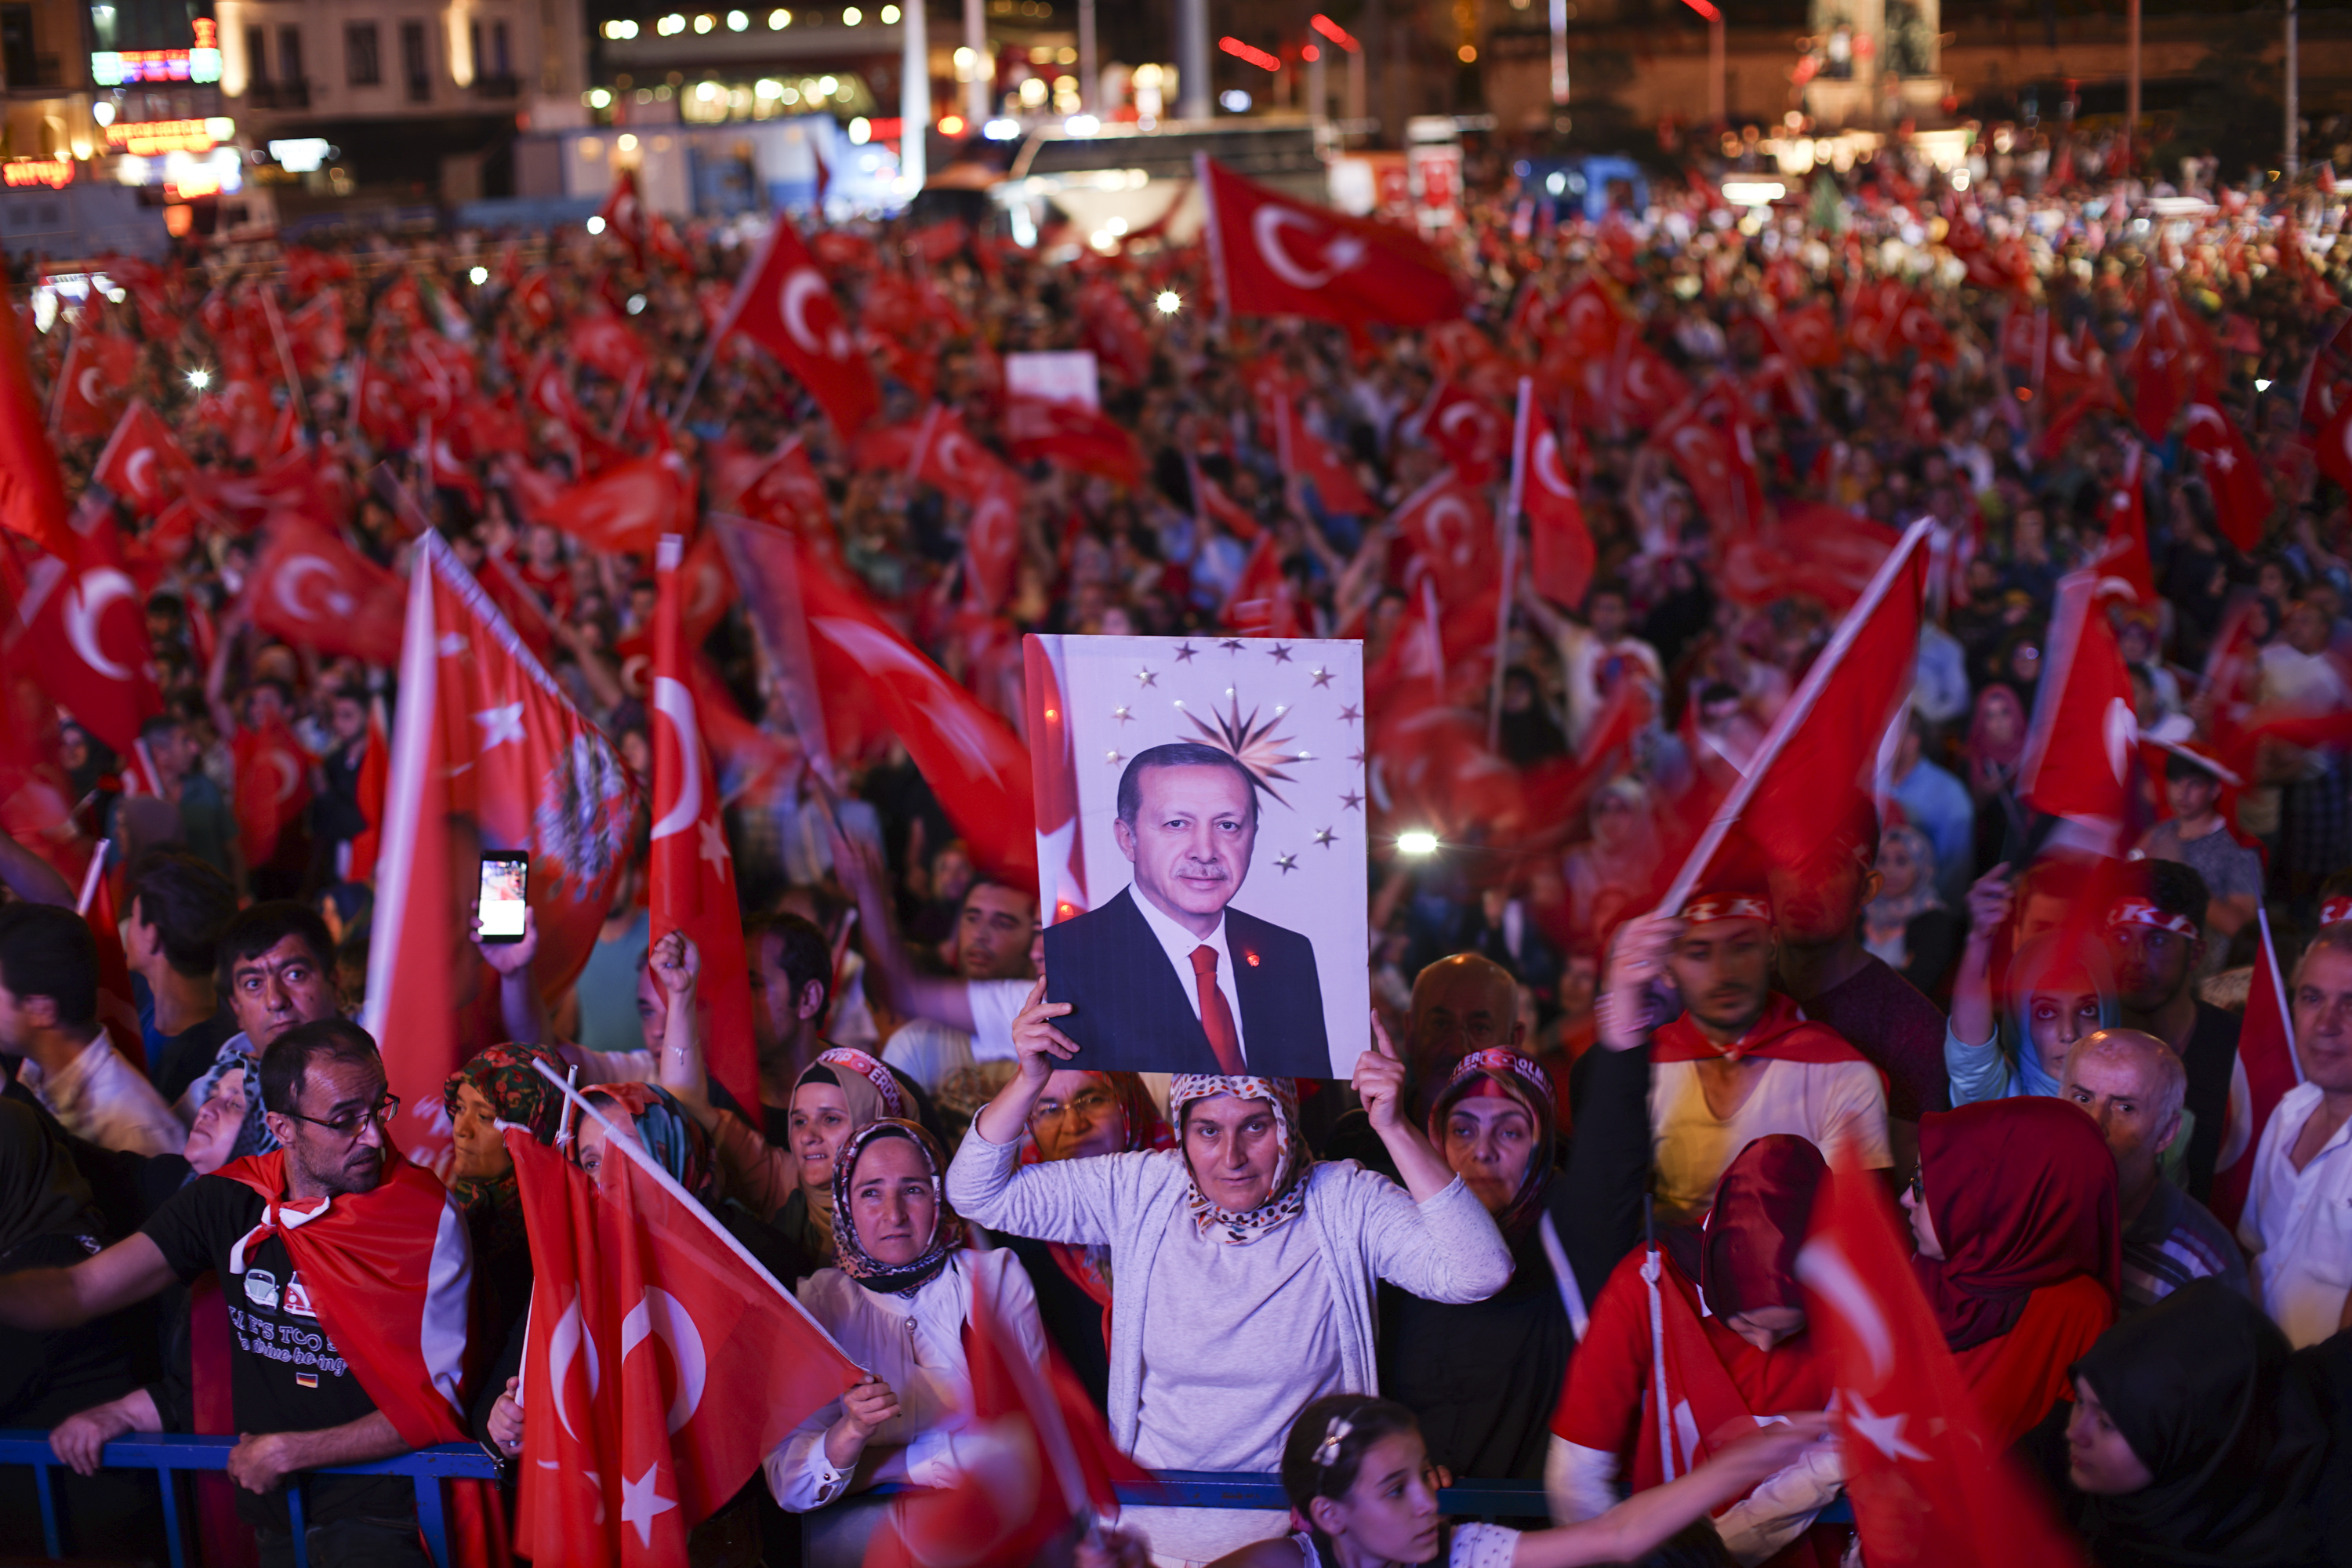 THE CABLE PODCAST: Turkey's political landscape